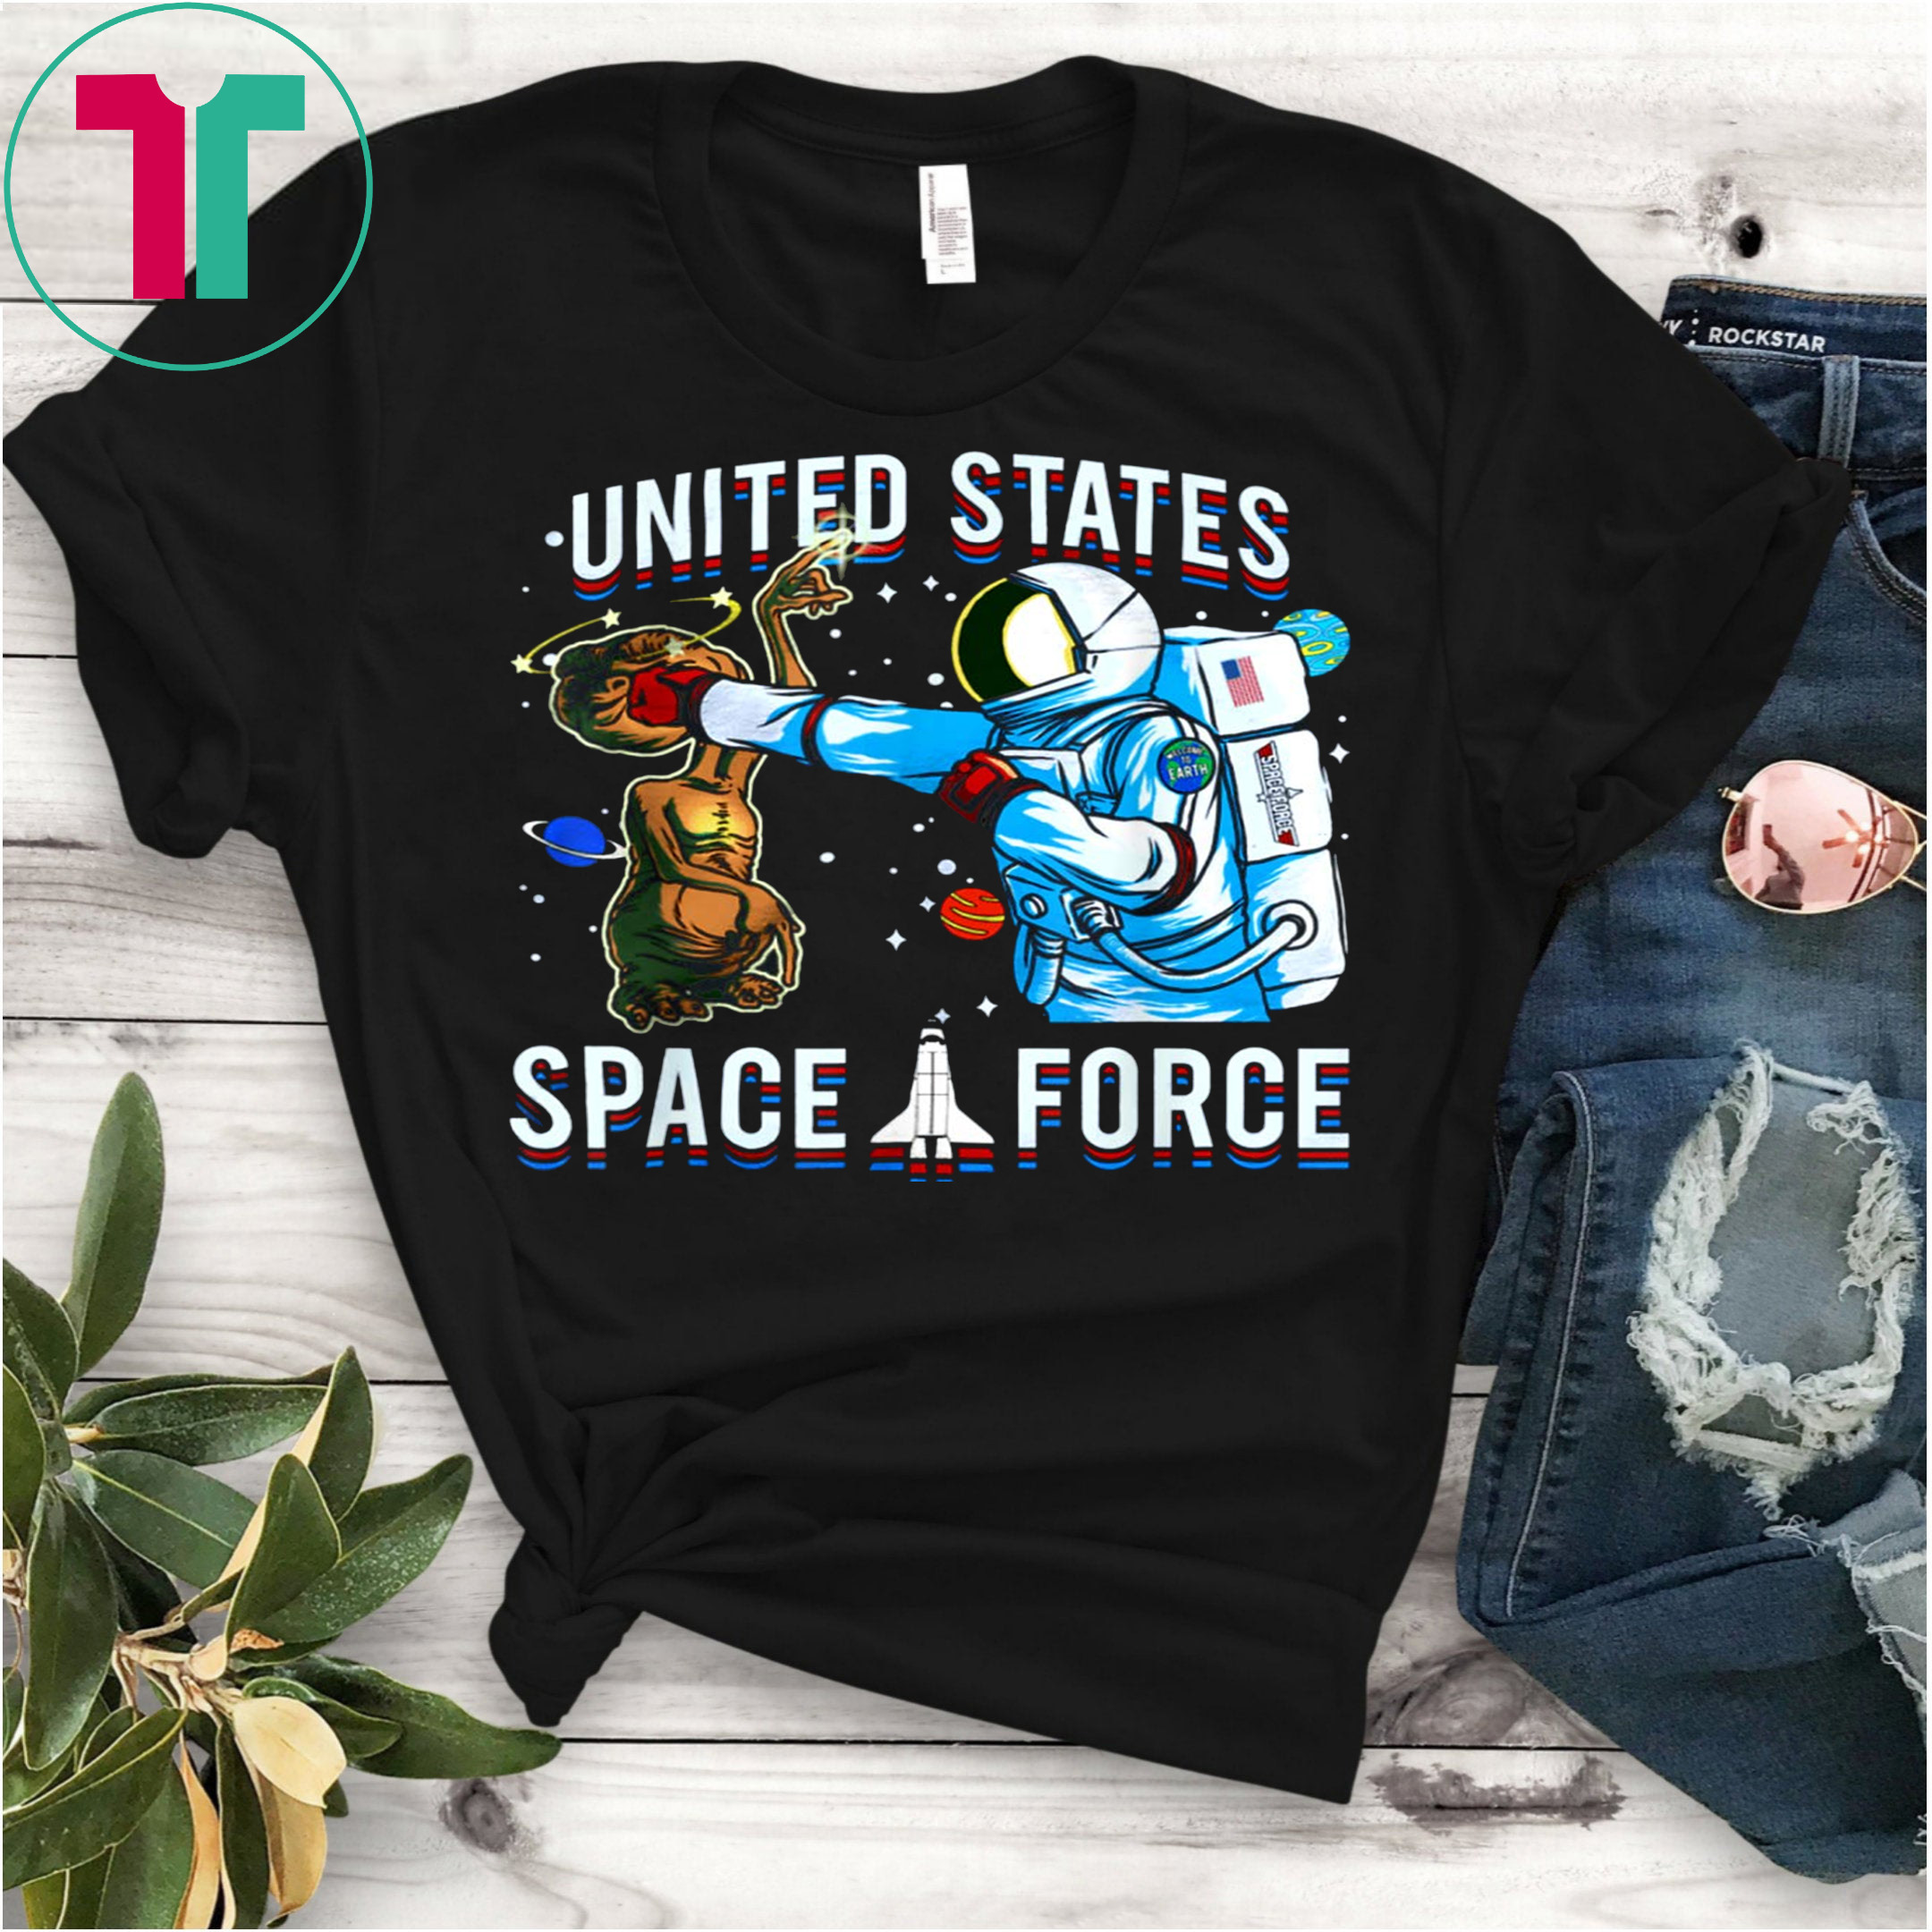 9968e77ec United States Space Force Alien T-shirt - Reviewshirts Office